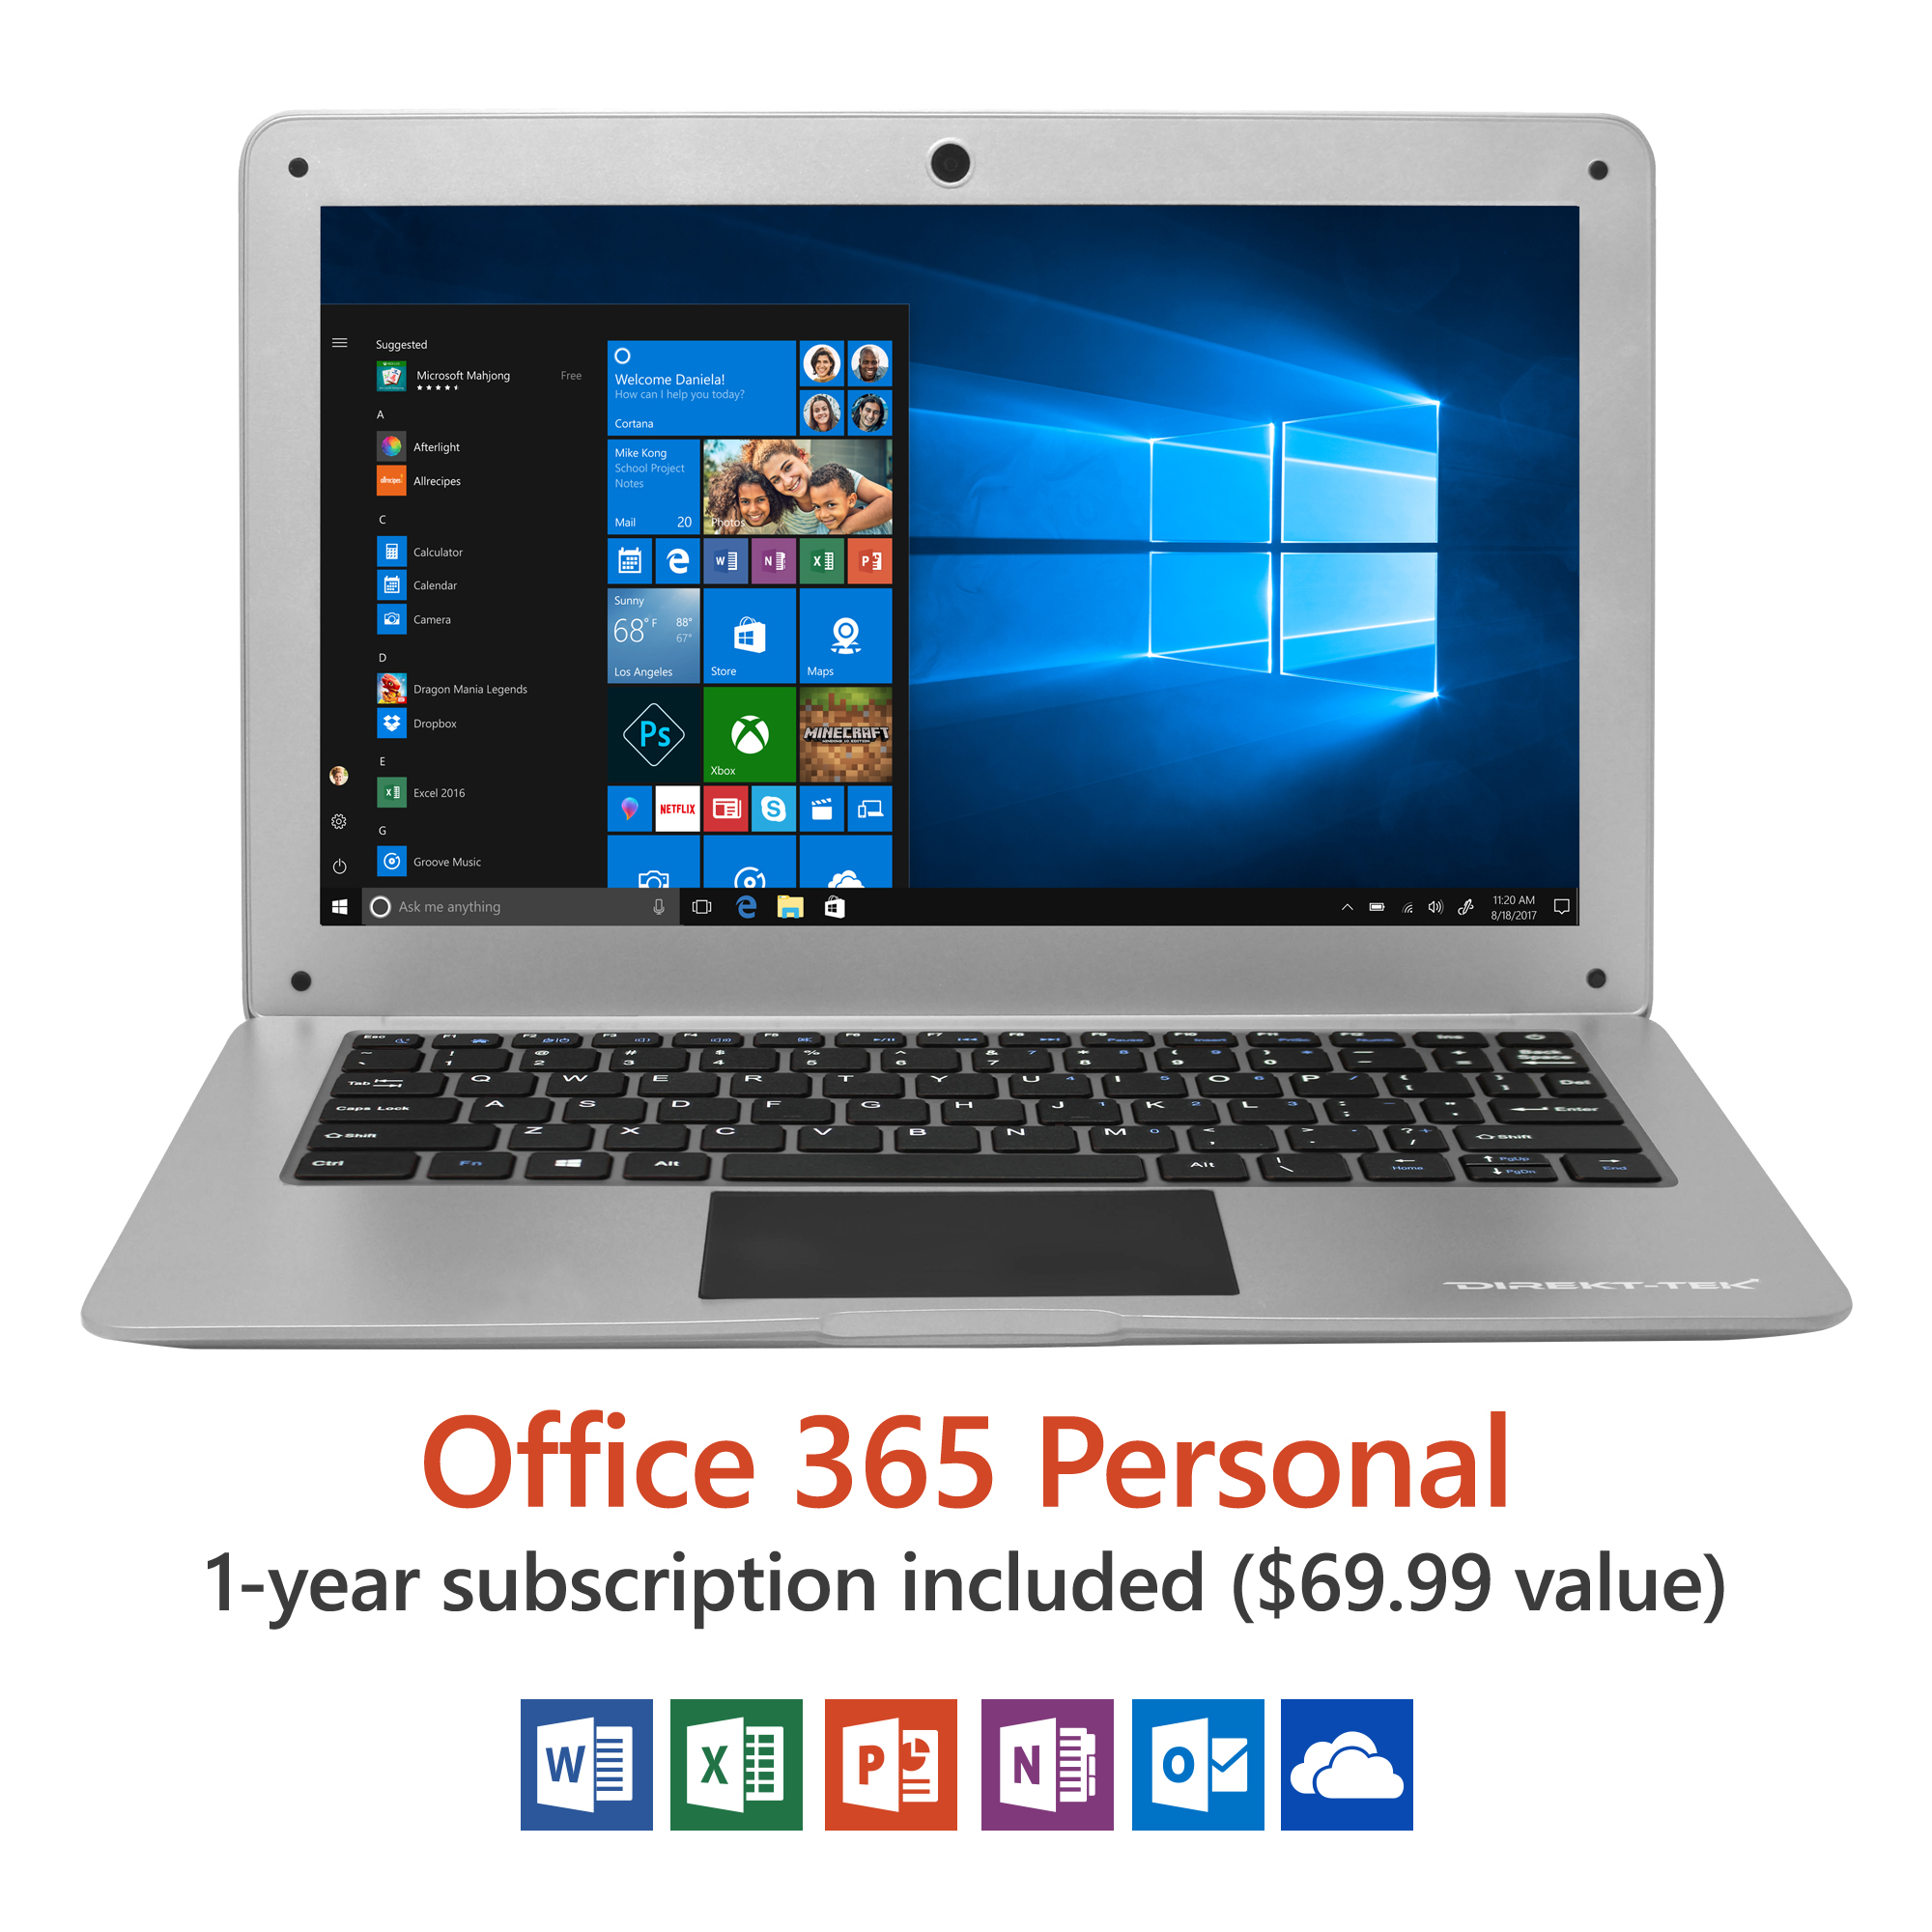 "14"" Ultra Slim Laptop, Windows 10 Home, Office 365 Personal 1-Year Subscription Included ($69.99 Value), Full HD, Intel Processor, 32GB storage, Front camera with 10 hour battery"